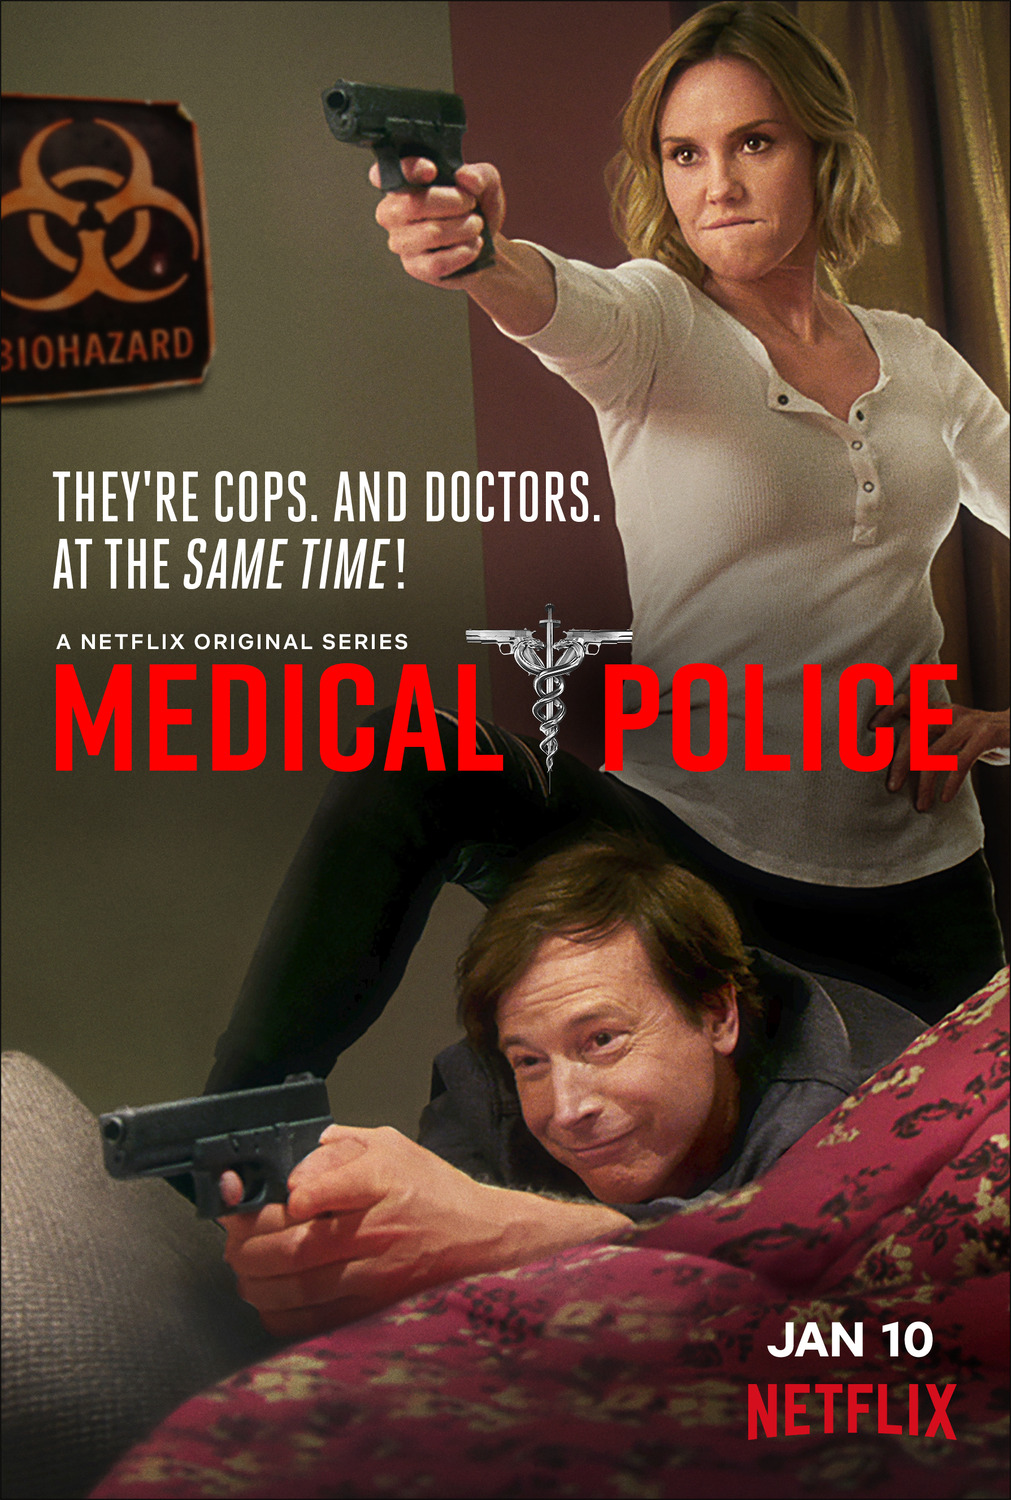 DAKTARAI POLICININKAI (1 Sezonas) / MEDICAL POLICE Season 1